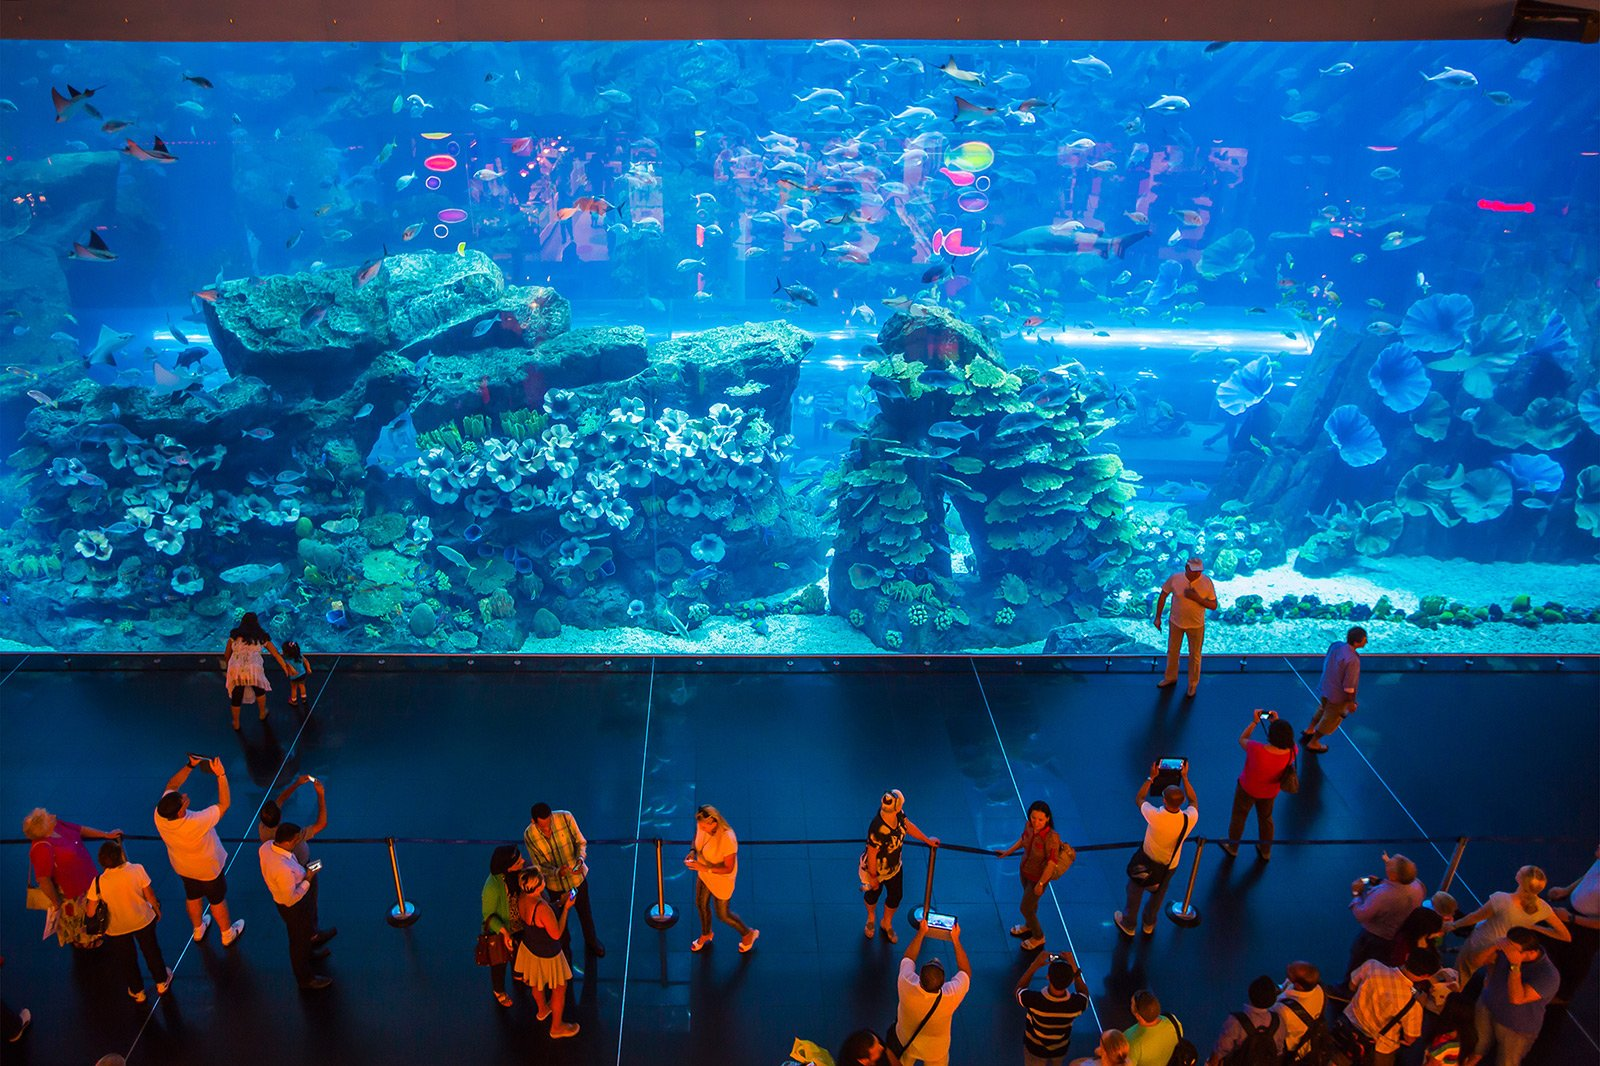 How to see the aquarium with the world's largest glass area in Dubai